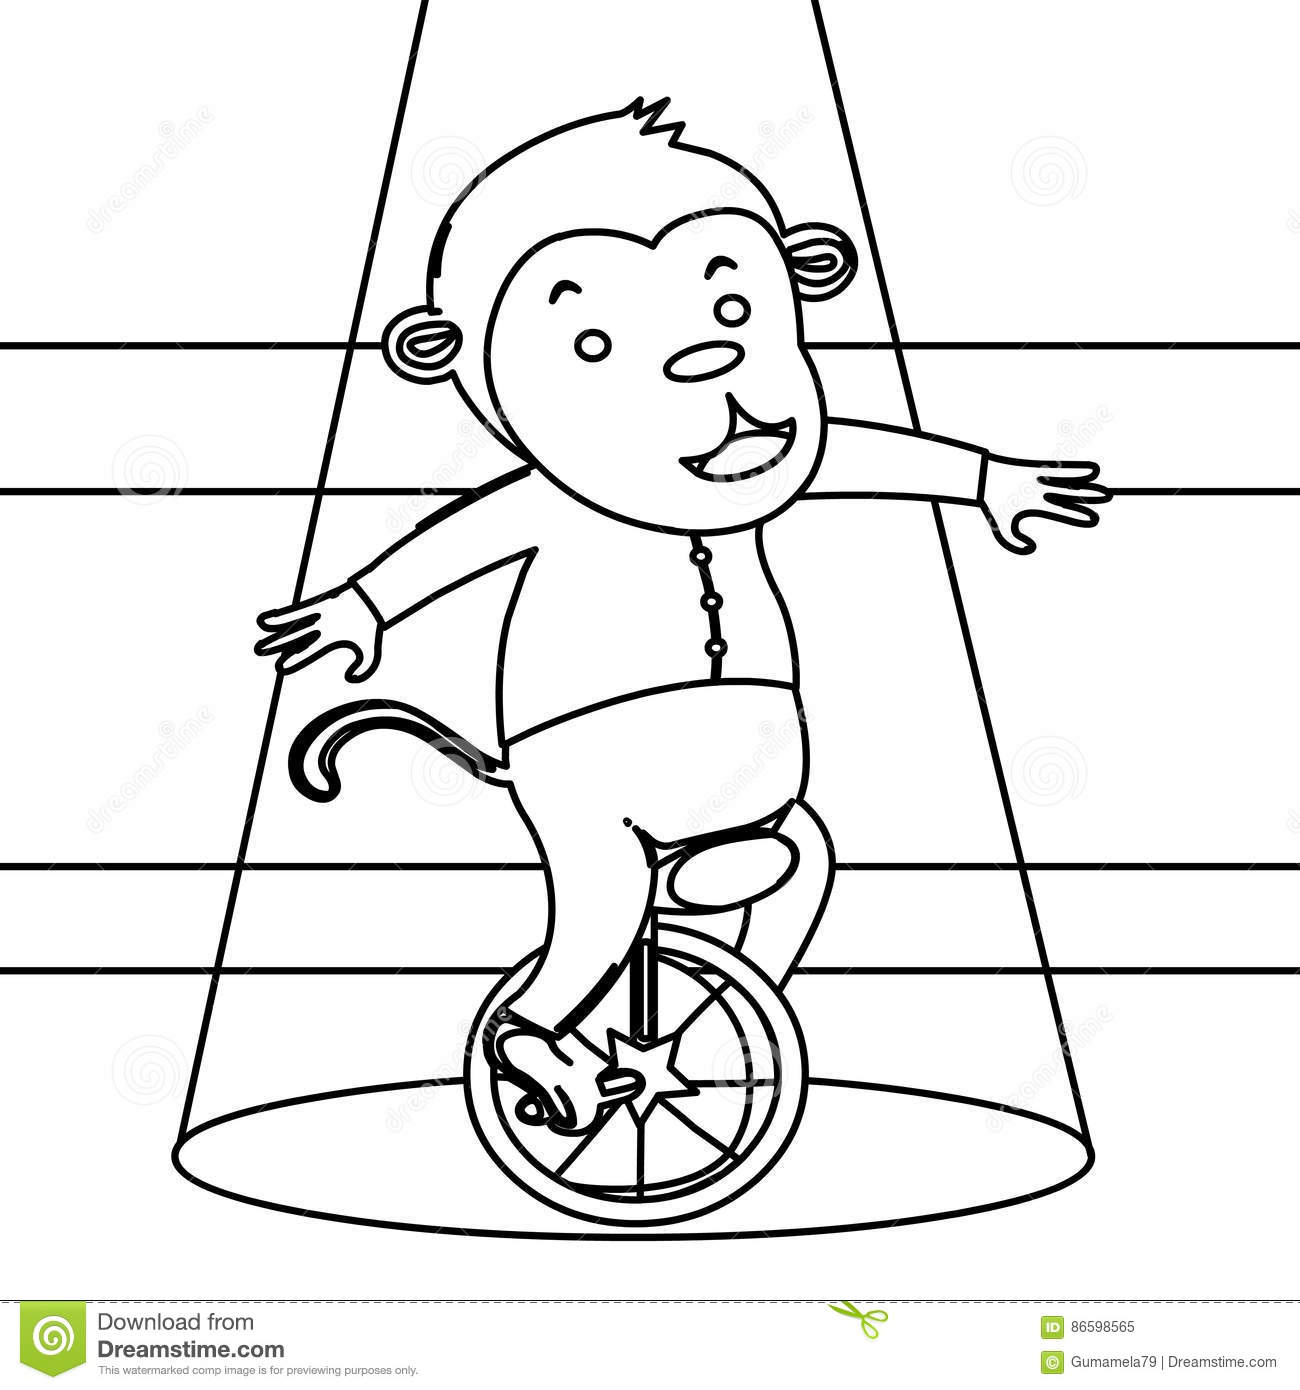 circus monkey on a unicycle coloring page stock illustration